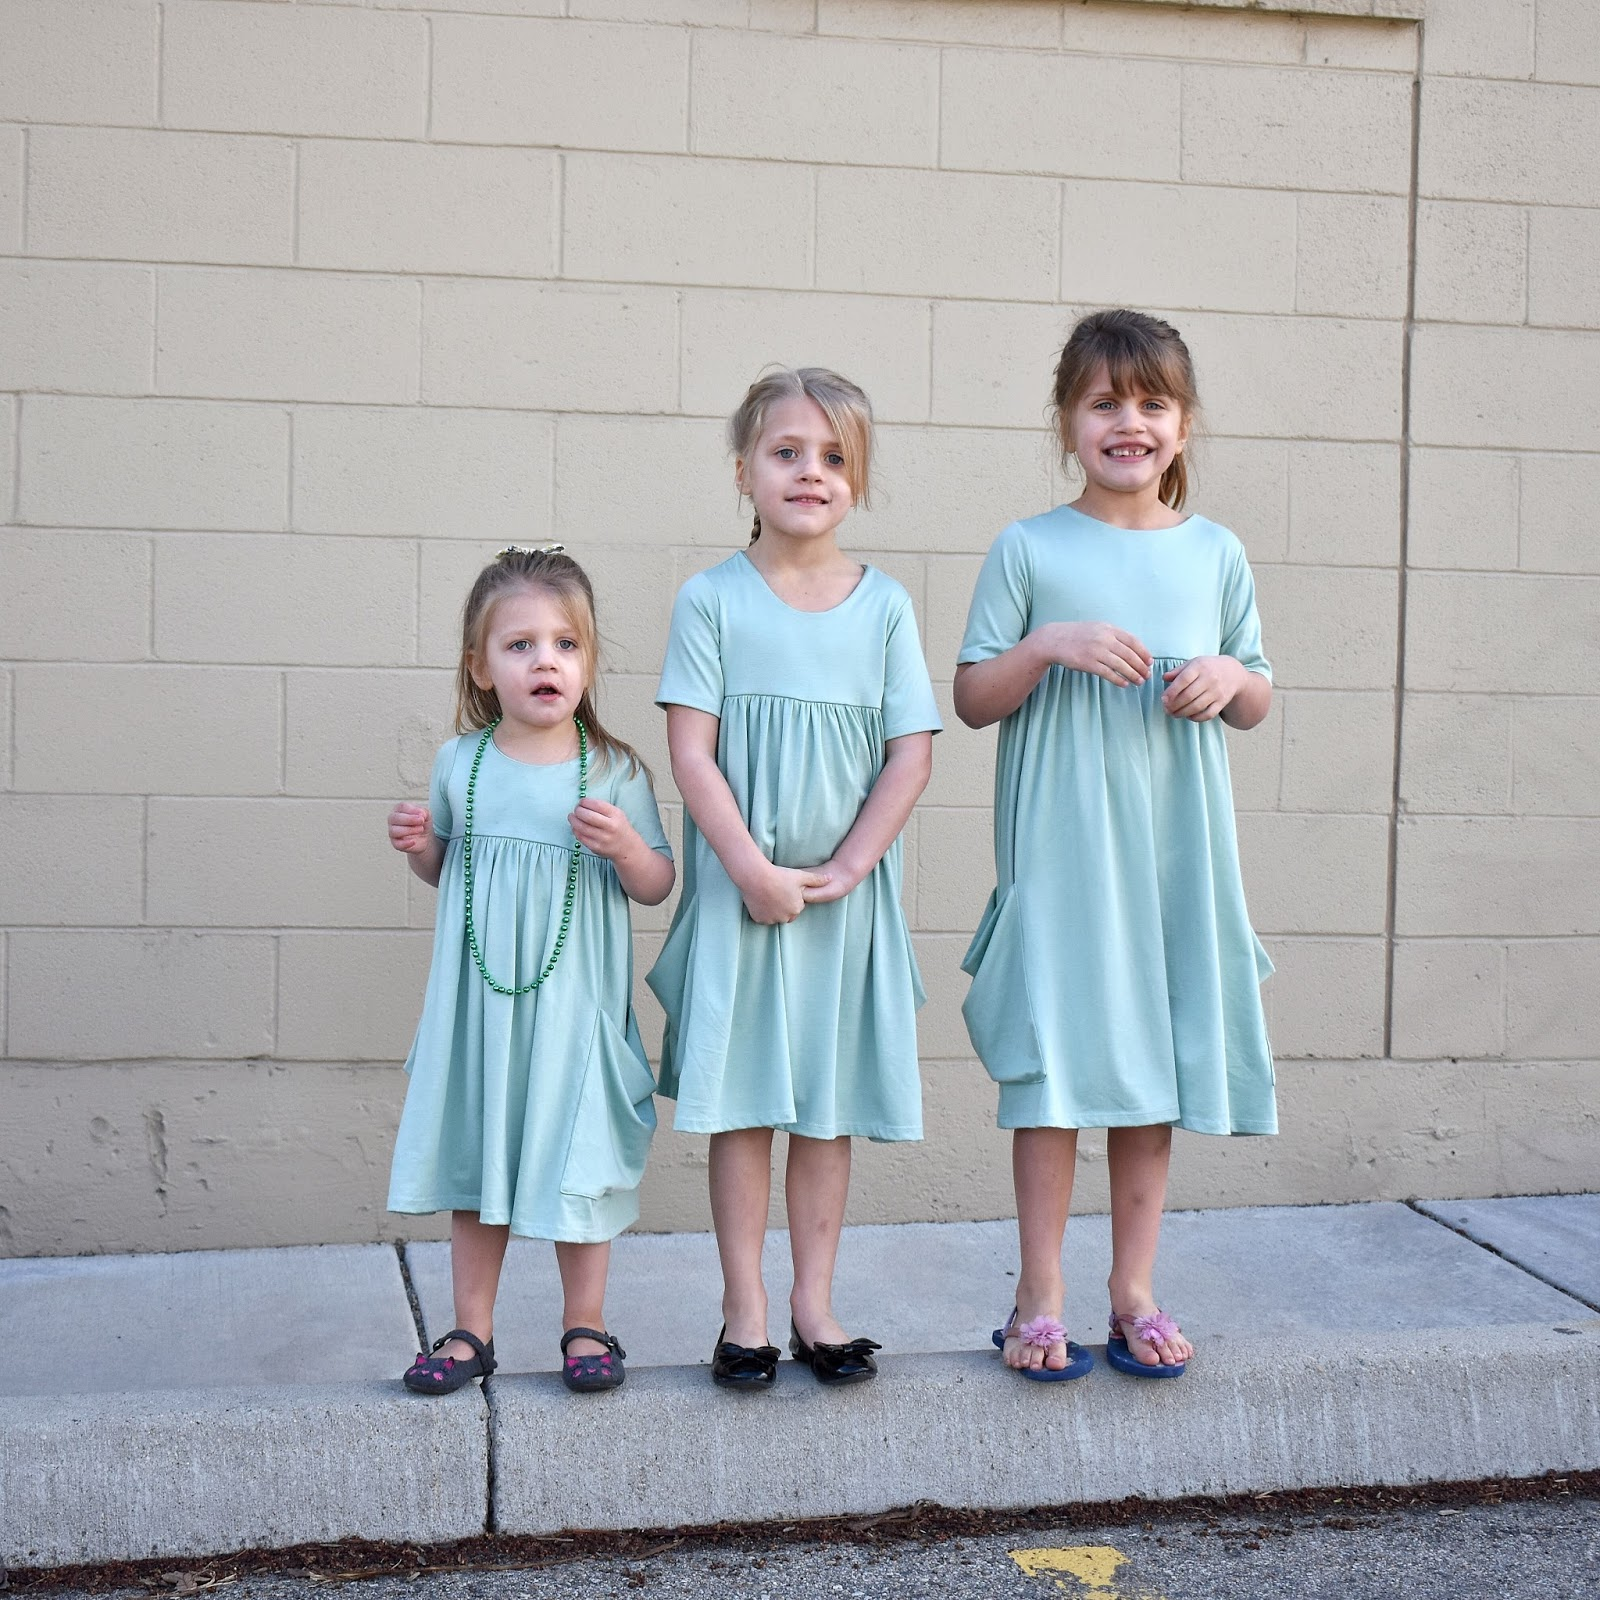 a2483c5bcdfc Alice and Ames is known for their twirl dresses. They make dresses that  twirl like no other. Dresses that your little dancer is going to love!